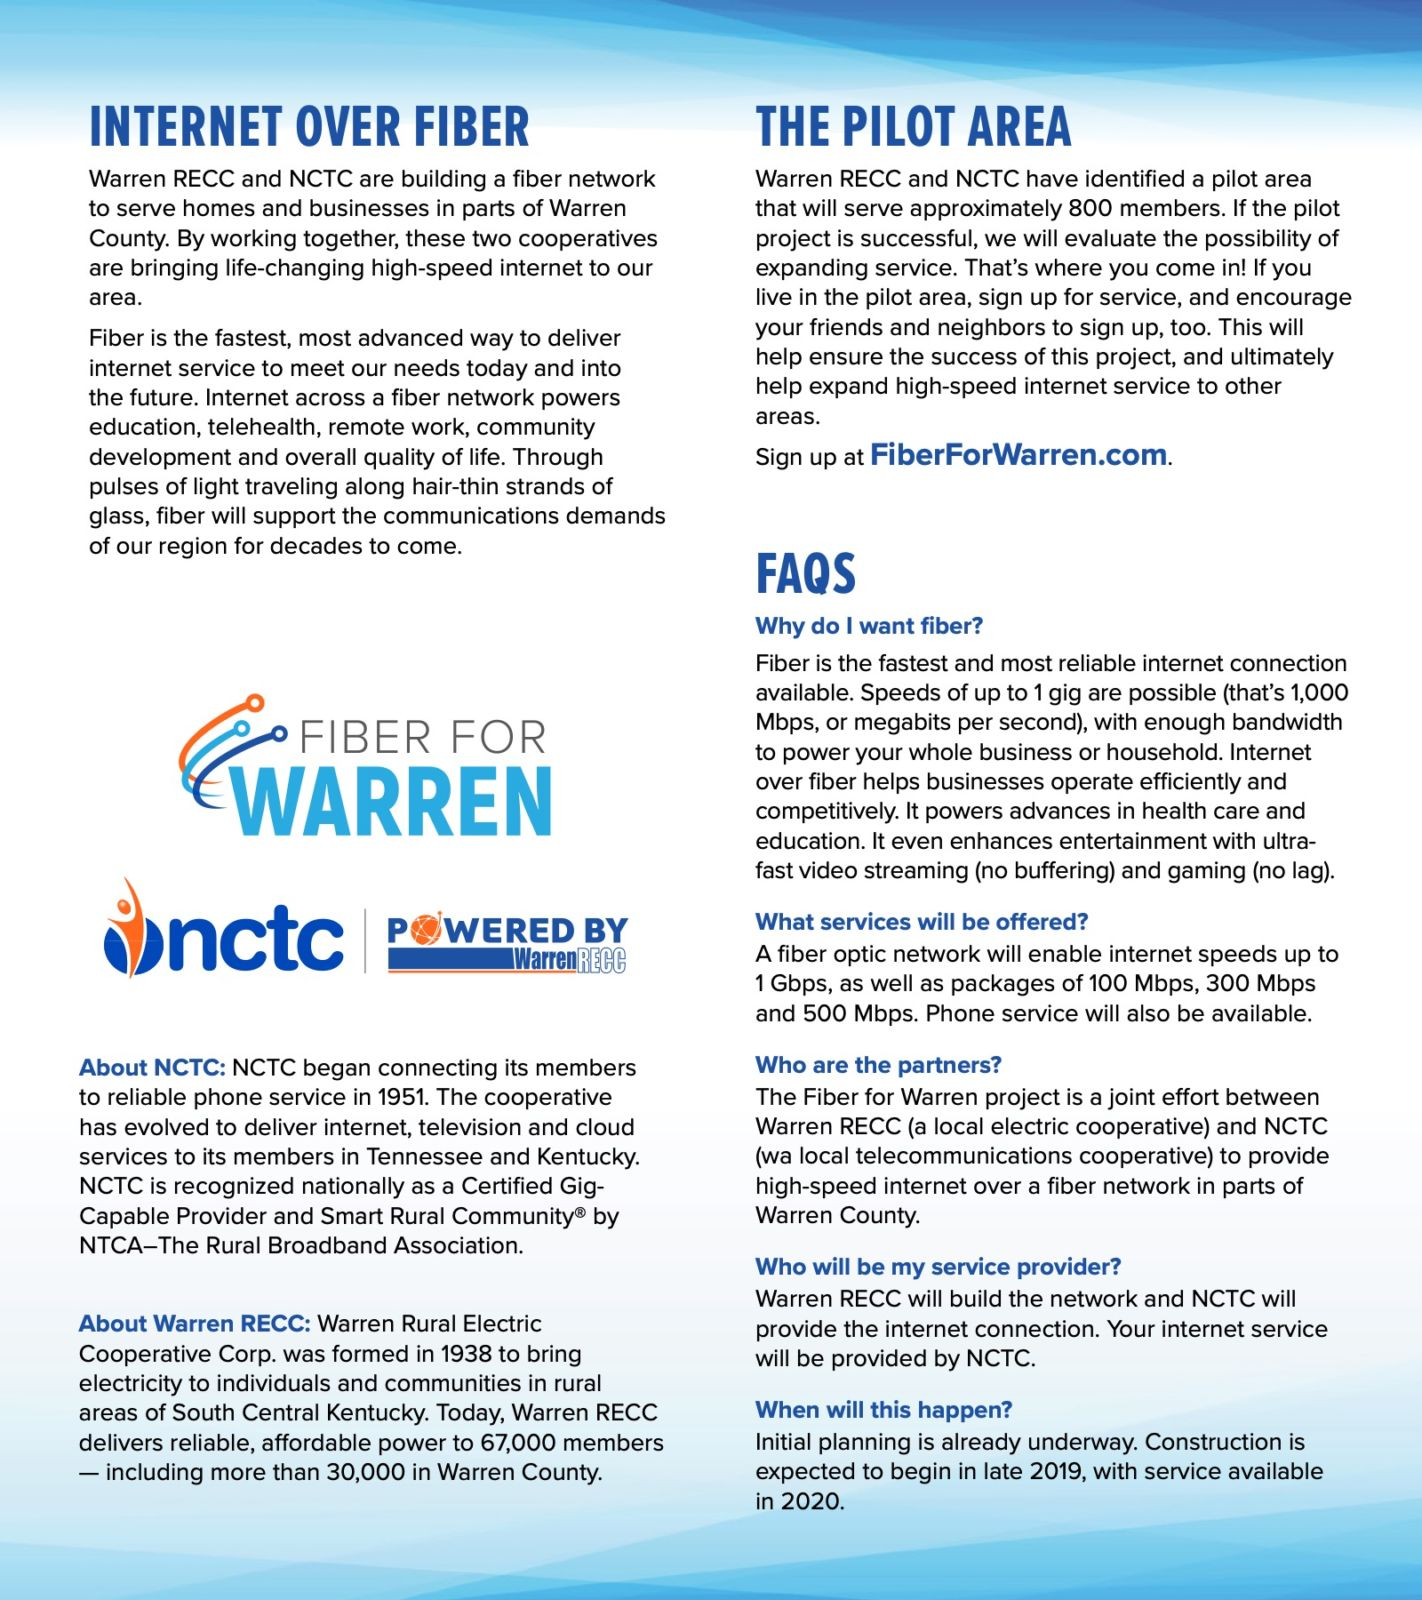 Internet over Fiber. Warren RECC and NCTC are building a fiber network to serve homes and businesses in parts of Warren County. By working together, these two cooperatives are bringing life-changing high-speed internet to our area. Fiber is the fastest, most advanced way to deliver internet service to meet our needs today and into the future. Internet across a fiber network powers education, telehealth, remote work, community development and overall quality of life. Through pulses of light traveling along hair-thin strands of glass, fiber will support the communications demands of our region for decades to come. Fiber for Warren. NCTC. Powered by Warren RECC. About NCTC: NCTC began connecting its members to reliable phone service in 1951. The cooperative has evolved to deliver internet, television and cloud services to its members in Tennessee and Kentucky. NCTC is recognized nationally as a Certified Gig- Capable Provider and Smart Rural Community® by NTCA–The Rural Broadband Association. About Warren RECC: Warren Rural Electric Cooperative Corp. was formed in 1938 to bring electricity to individuals and communities in rural areas of South Central Kentucky. Today, Warren RECC delivers reliable, affordable power to 67,000 members — including more than 30,000 in Warren County. The Pilot Area. Warren RECC and NCTC have identified a pilot area that will serve approximately 800 members. If the pilot project is successful, we will evaluate the possibility of expanding service. That's where you come in! If you live in the pilot area, sign up for service, and encourage your friends and neighbors to sign up, too. This will help ensure the success of this project, and ultimately help expand high-speed internet service to other areas. Sign up at FiberForWarren.com. Frequently Asked Questions. Why do I want fiber? Fiber is the fastest and most reliable internet connection available. Speeds of up to 1 gig are possible (that's 1,000 Mbps, or megabits per second), with enough bandwidth to power your whole business or household. Internet over fiber helps businesses operate efficiently and competitively. It powers advances in health care and education. It even enhances entertainment with ultra- fast video streaming (no buffering) and gaming (no lag). What services will be offered? A fiber optic network will enable internet speeds up to 1 Gbps, as well as packages of 100 Mbps, 300 Mbps and 500 Mbps. Phone service will also be available. Who are the partners? The Fiber for Warren project is a joint effort between Warren RECC (a local electric cooperative) and NCTC (wa local telecommunications cooperative) to provide high-speed internet over a fiber network in parts of Warren County. Who will be my service provider? Warren RECC will build the network and NCTC will provide the internet connection. Your internet service will be provided by NCTC. When will this happen? Initial planning is already underway. Construction is expected to begin in late 2019, with service available in 2020.